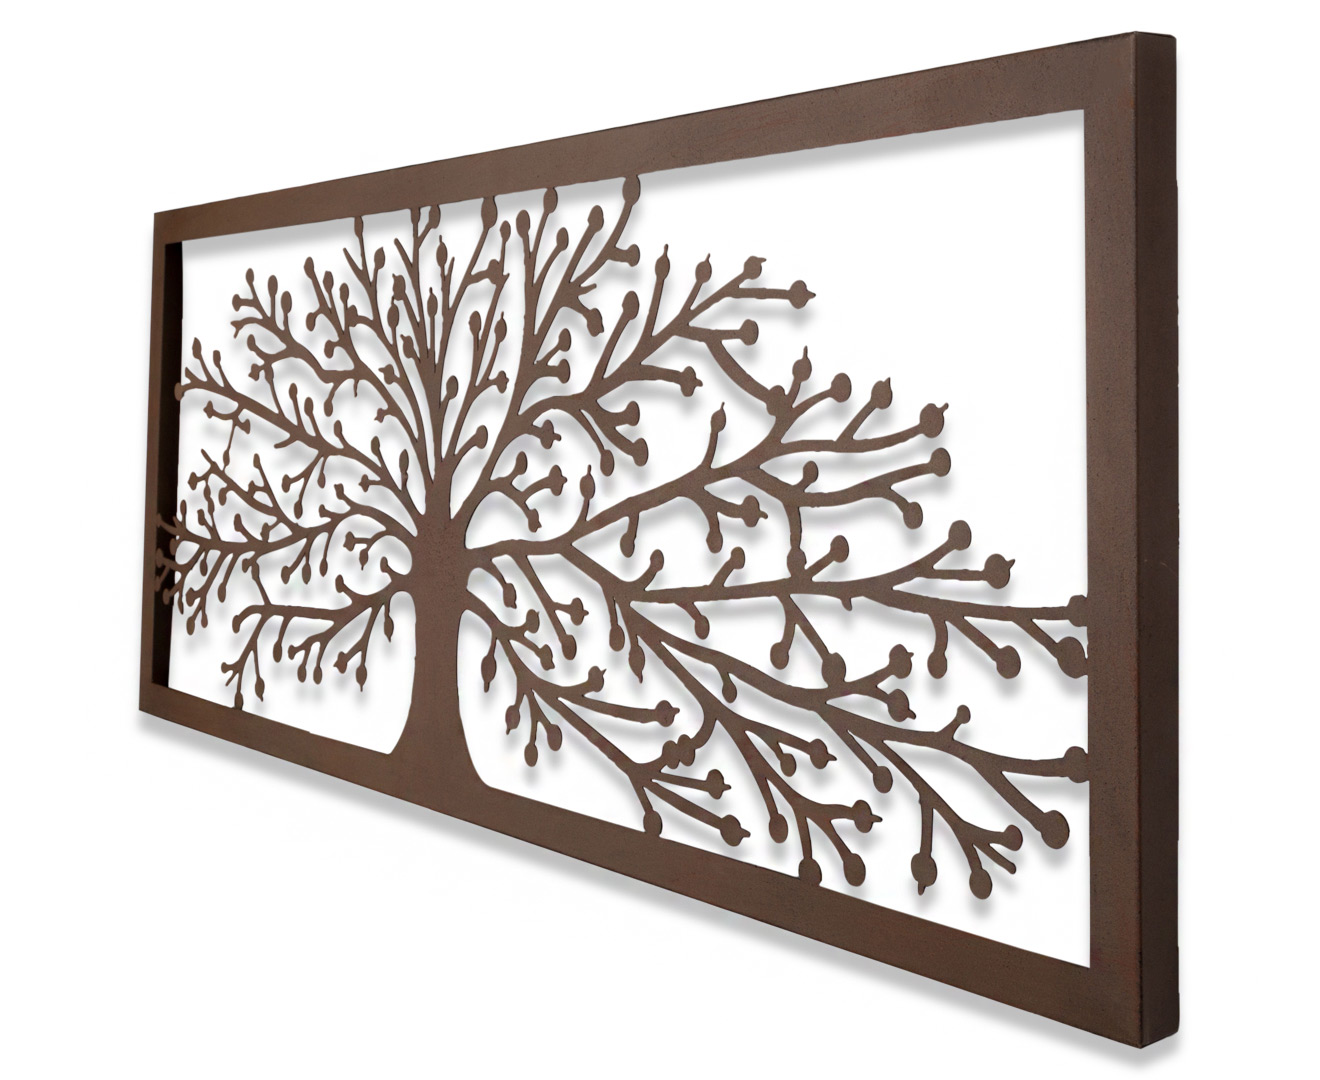 Art Décor: Floating Tree Of Life 115x45cm Laser-Cut Metal Wall Art